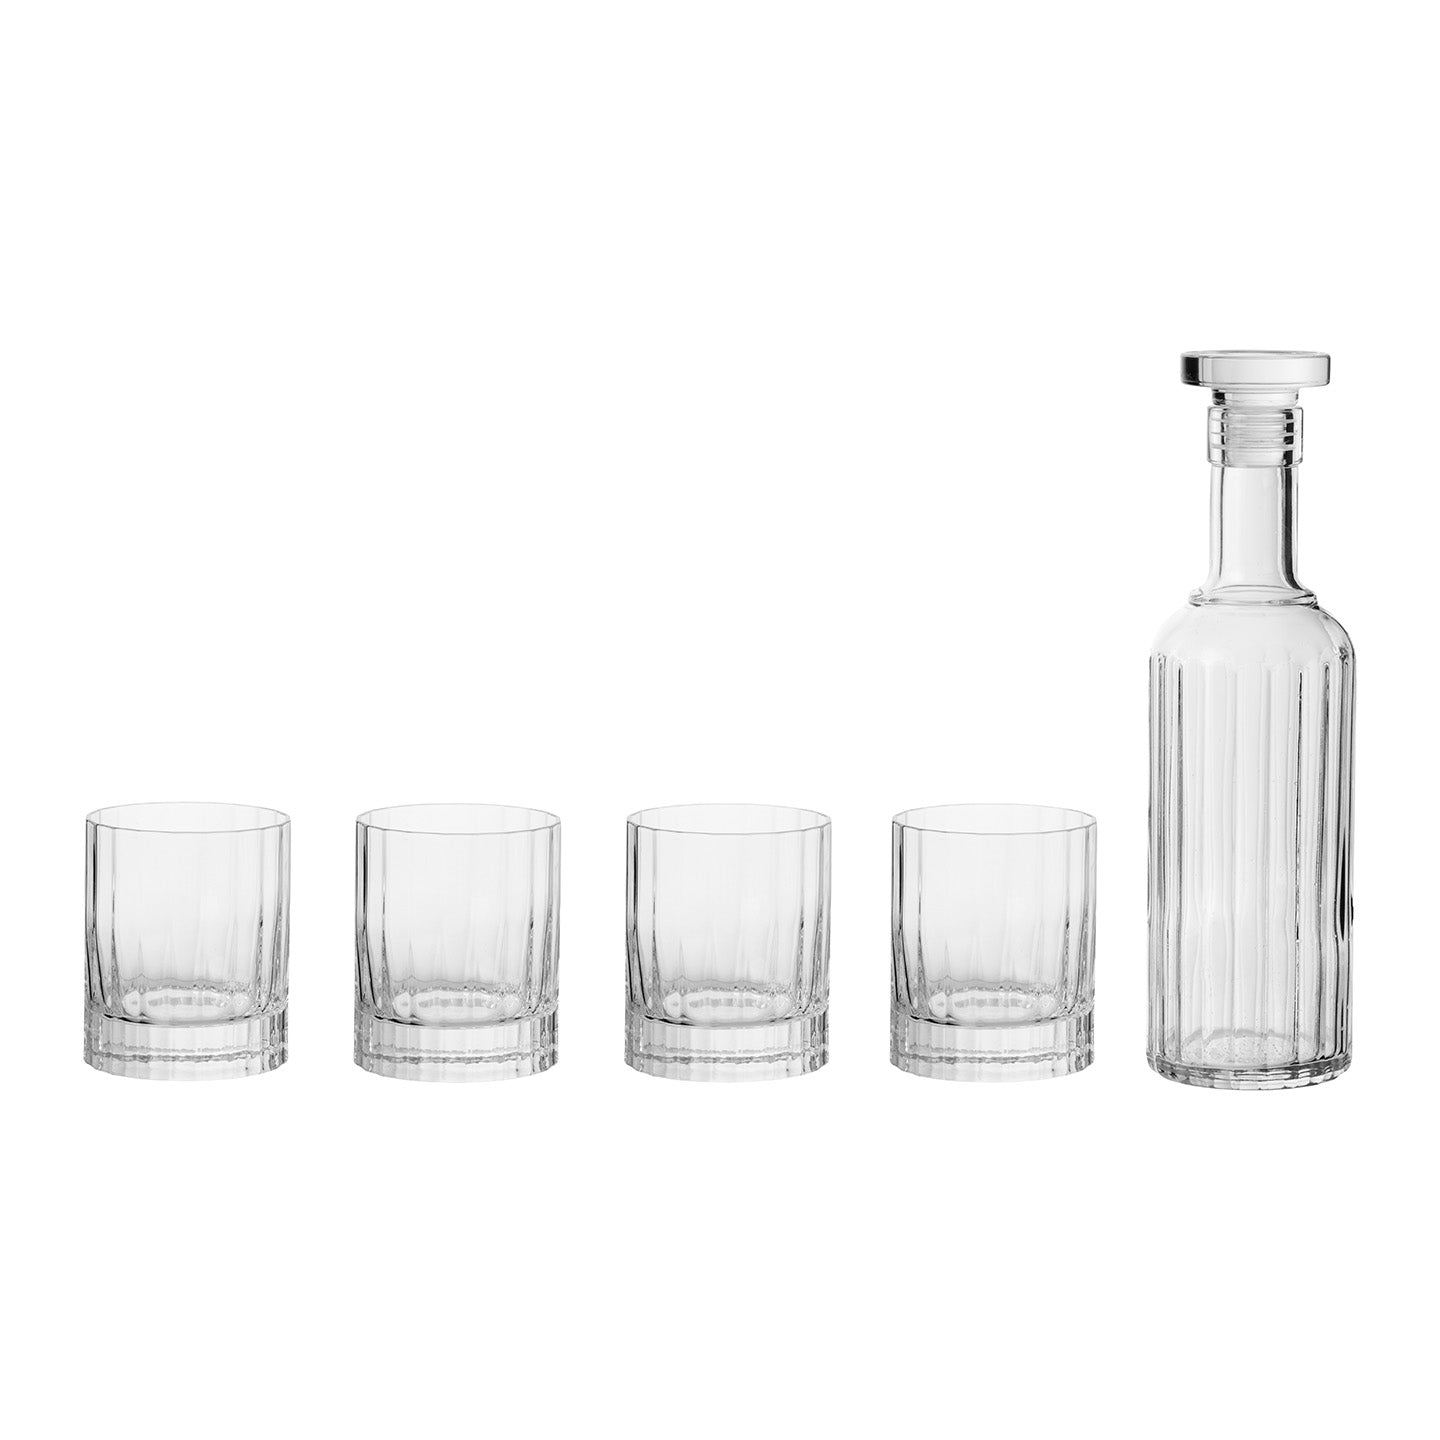 5 Piece Whiskey Set